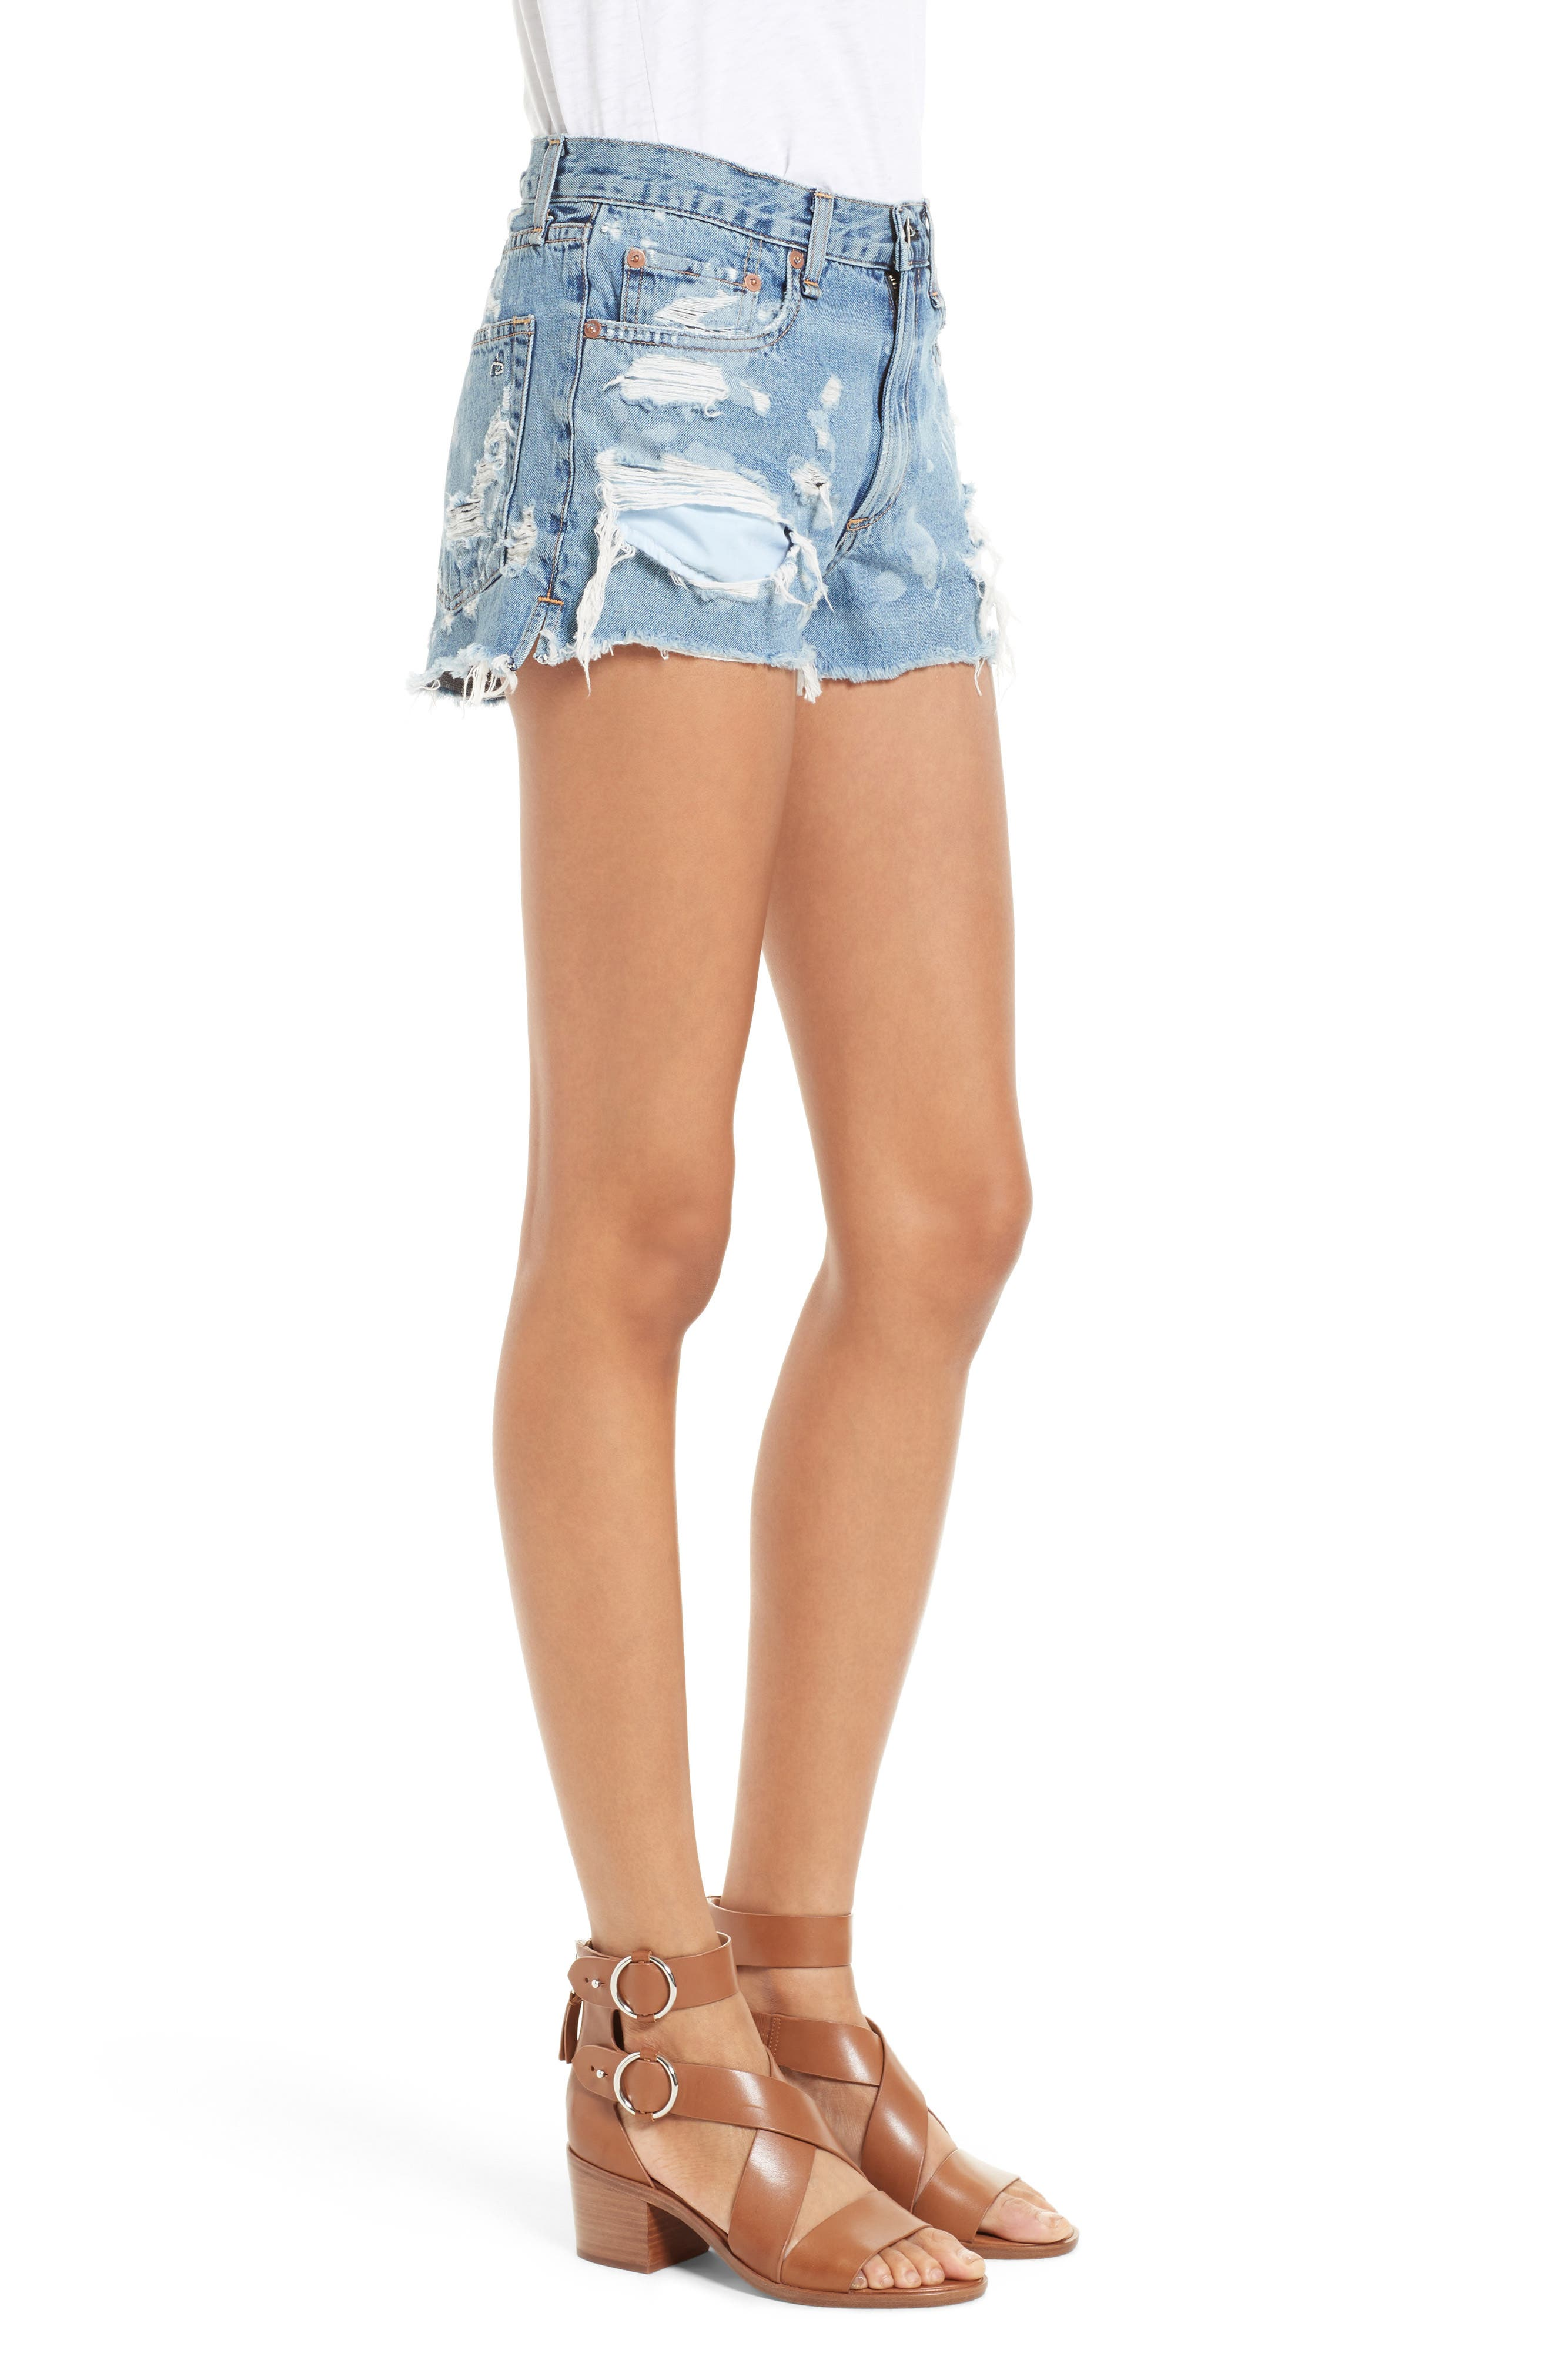 Justine High Waist Cutoff Denim Shorts,                             Alternate thumbnail 3, color,                             Brokenland